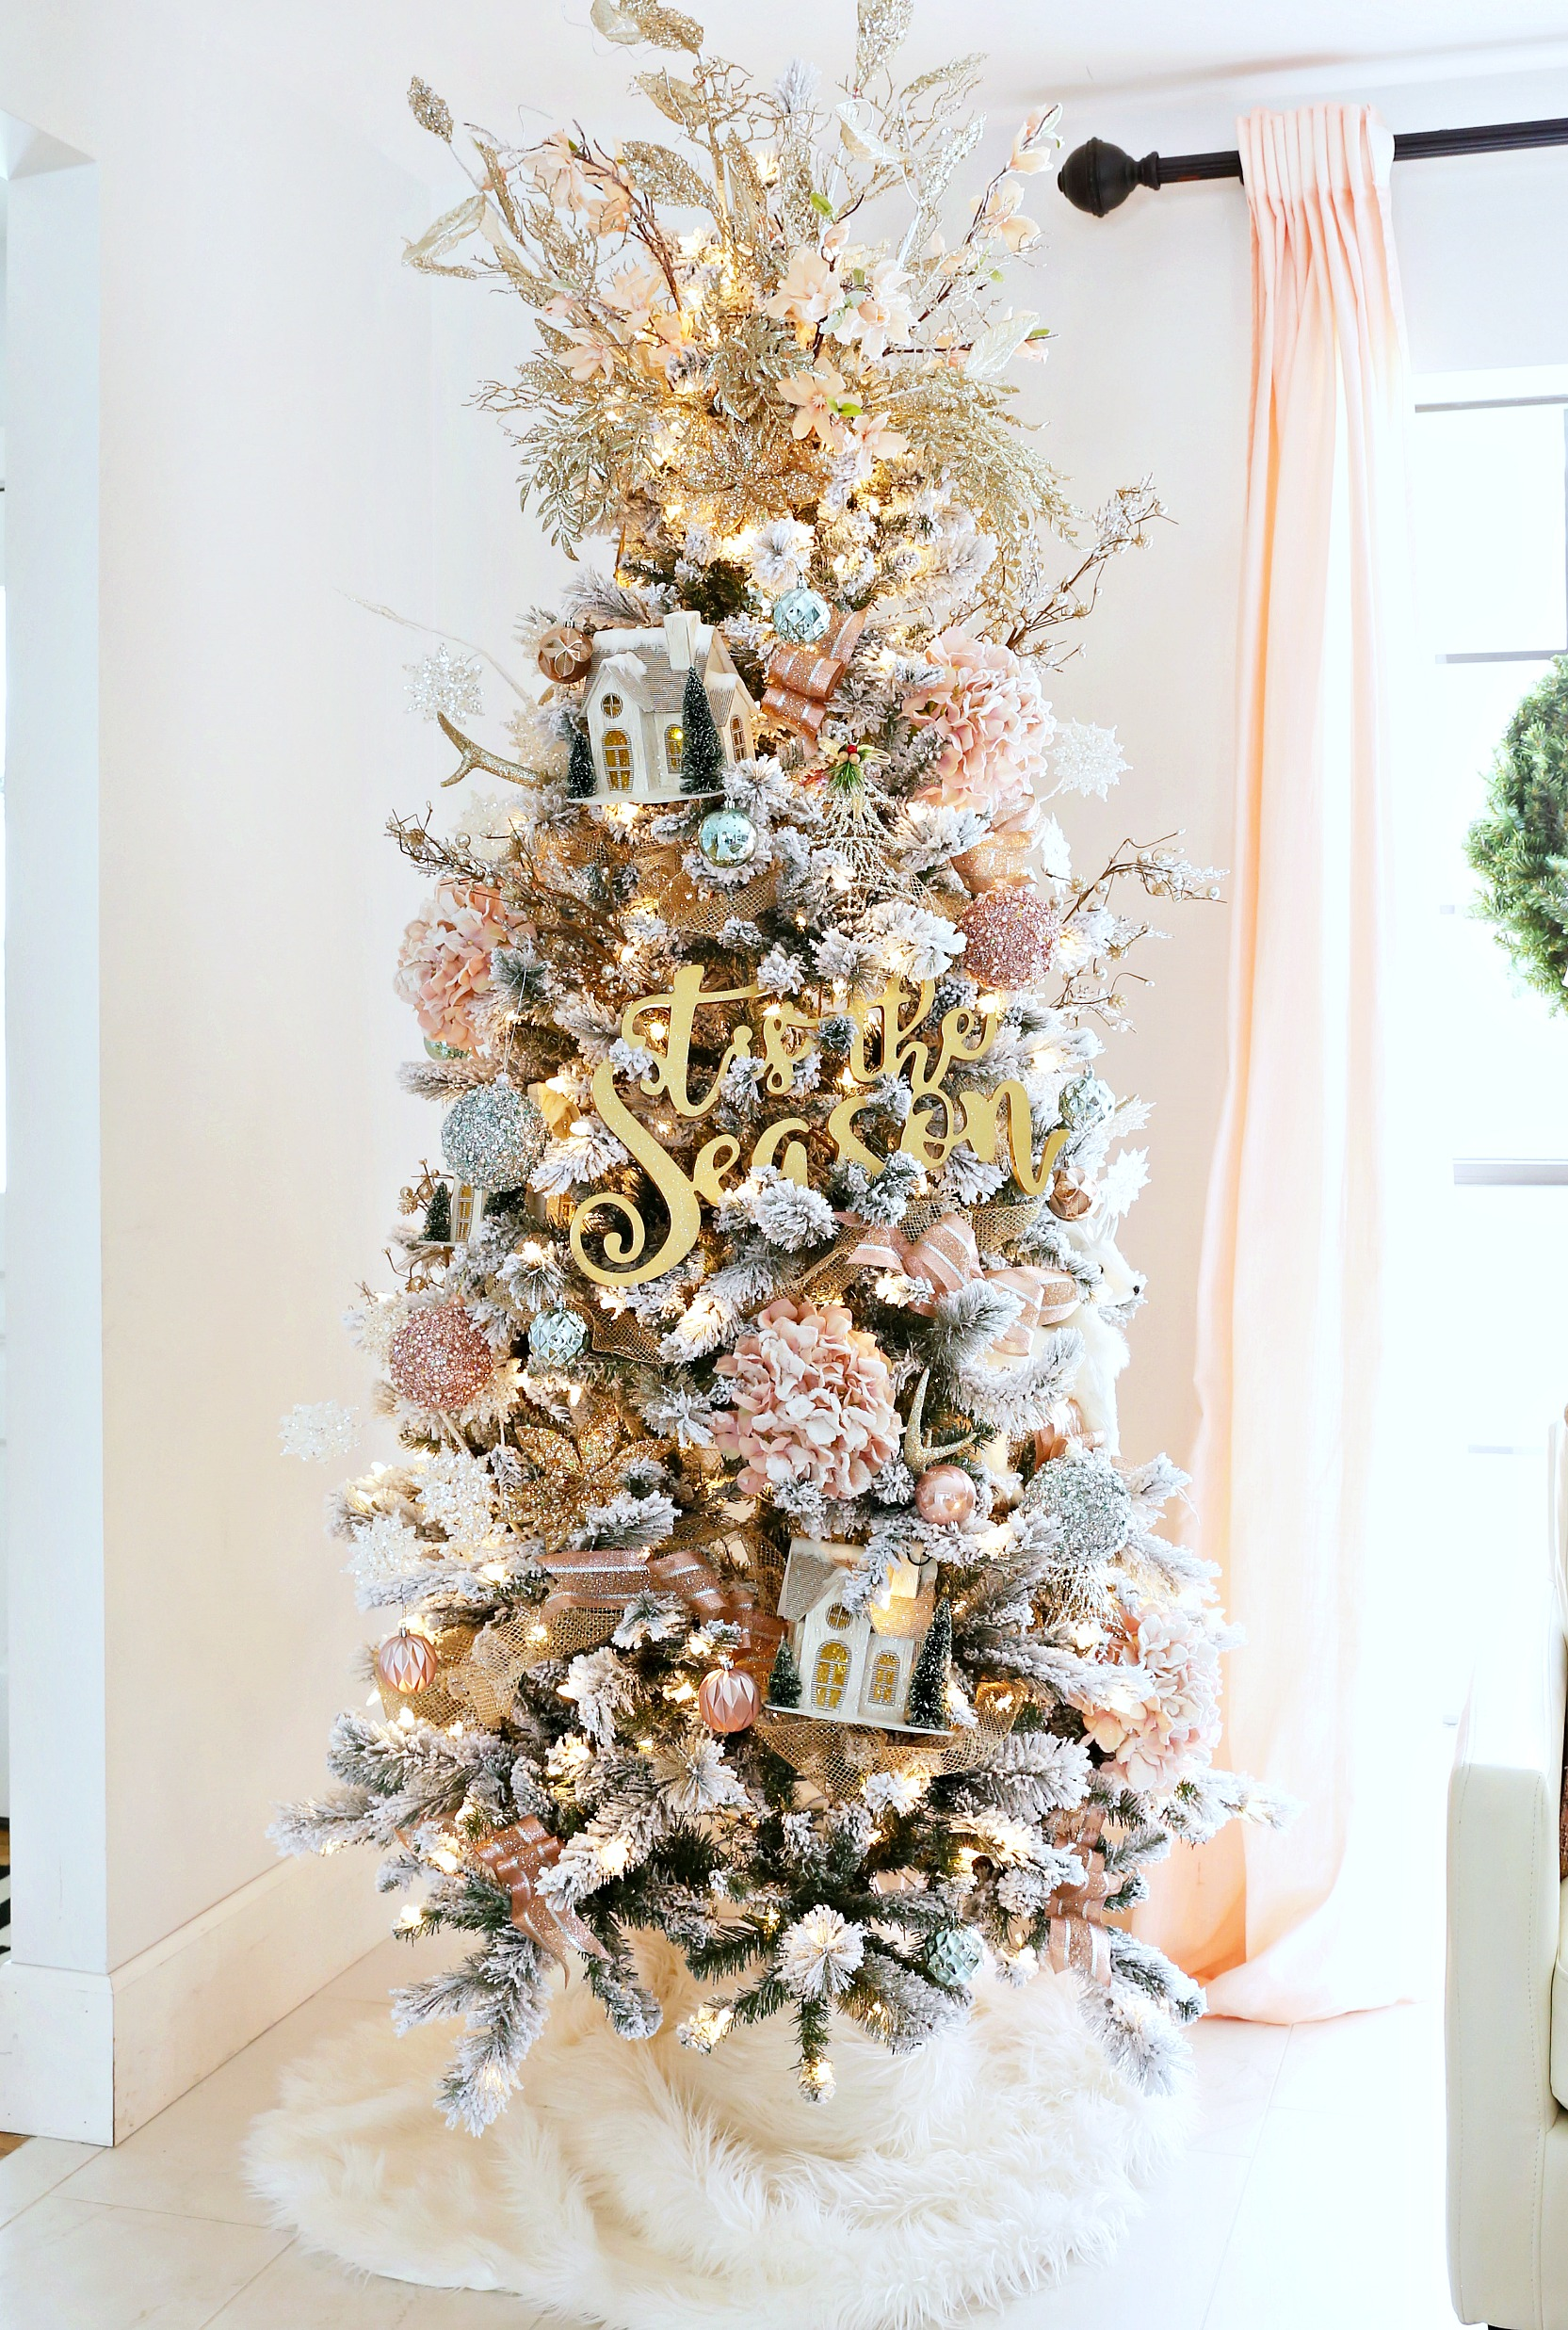 Christmas Tree Decorated.12 Christmas Tree Decorating Ideas